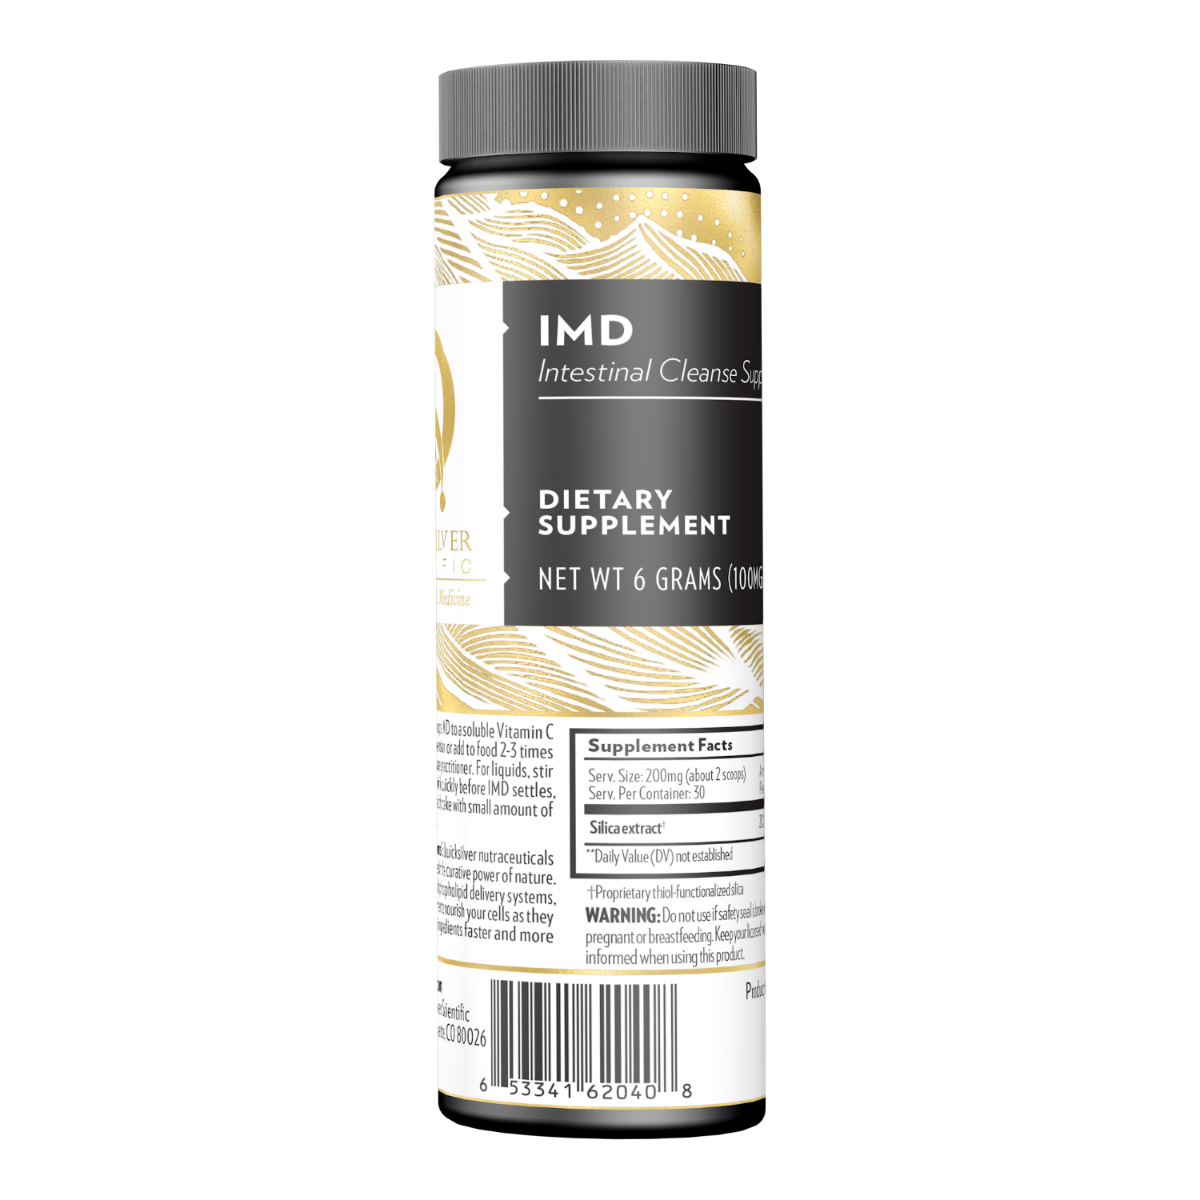 IMD Intestinal Cleanse Products